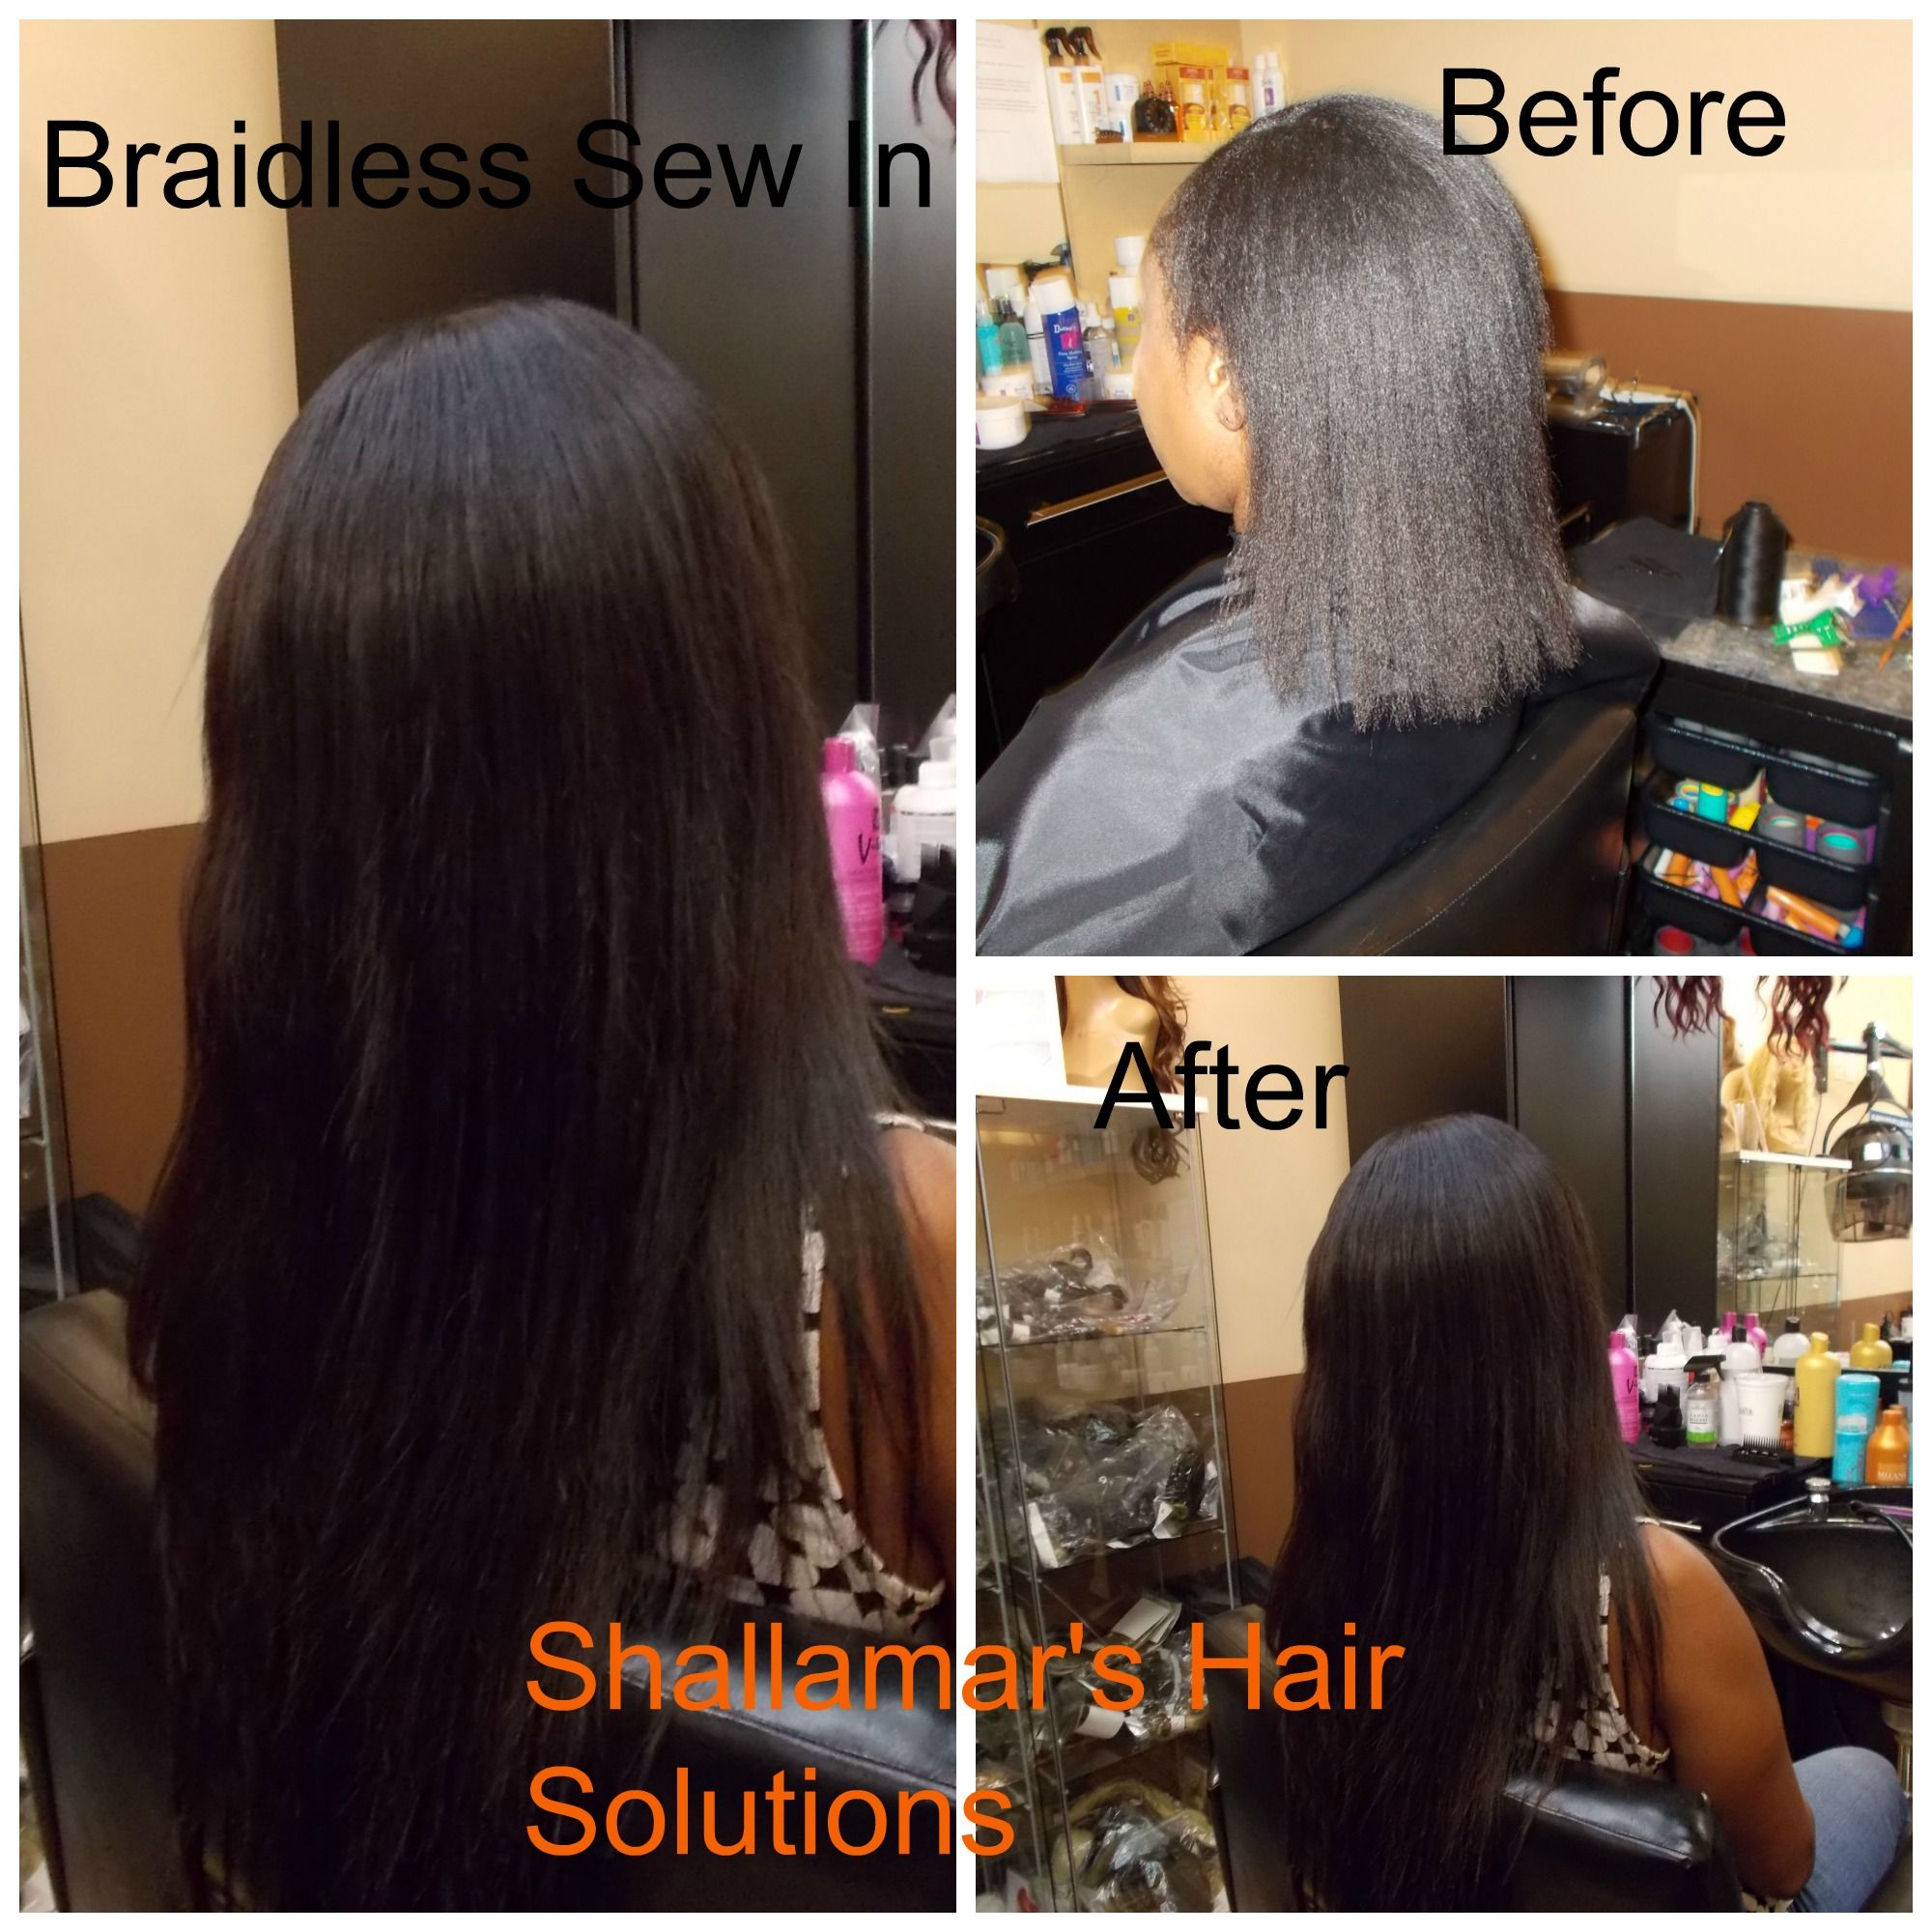 Hair Extensions Done With The Braidless Sew In Tecnhique Braidless